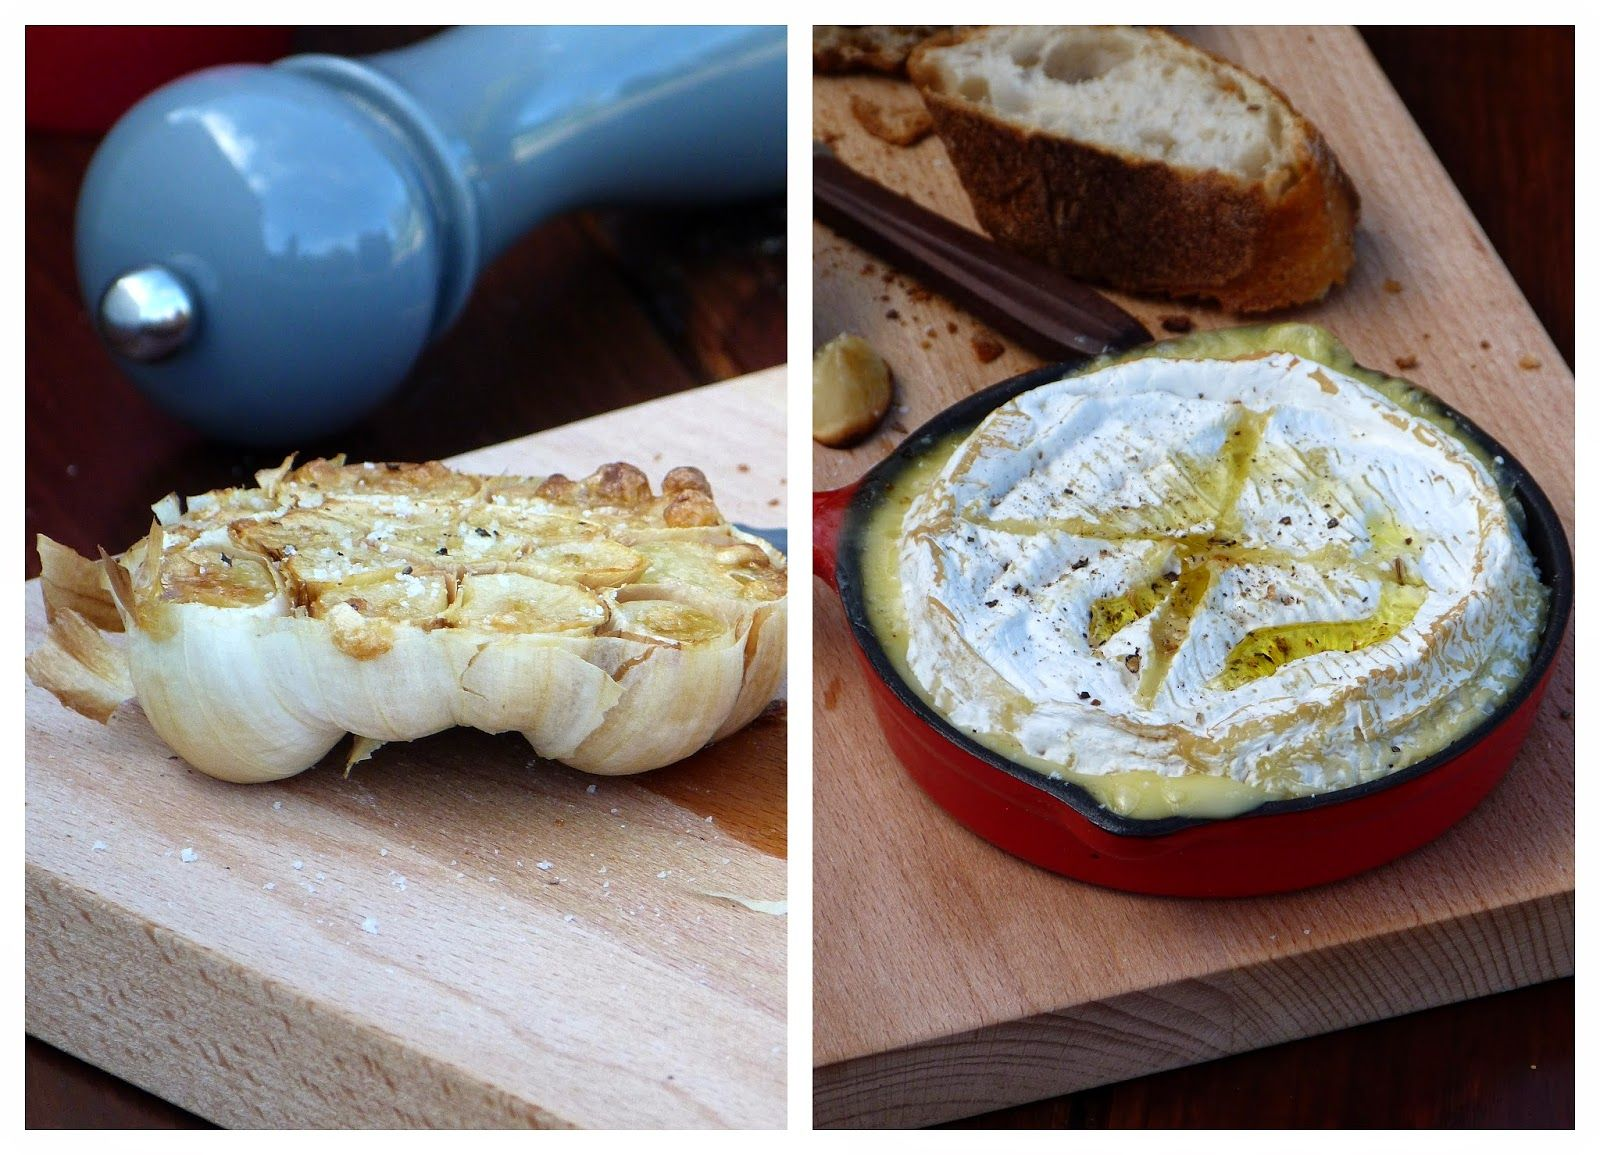 Chic, chic, chocolat...: Camembert et ail au four {Battle Food #24}